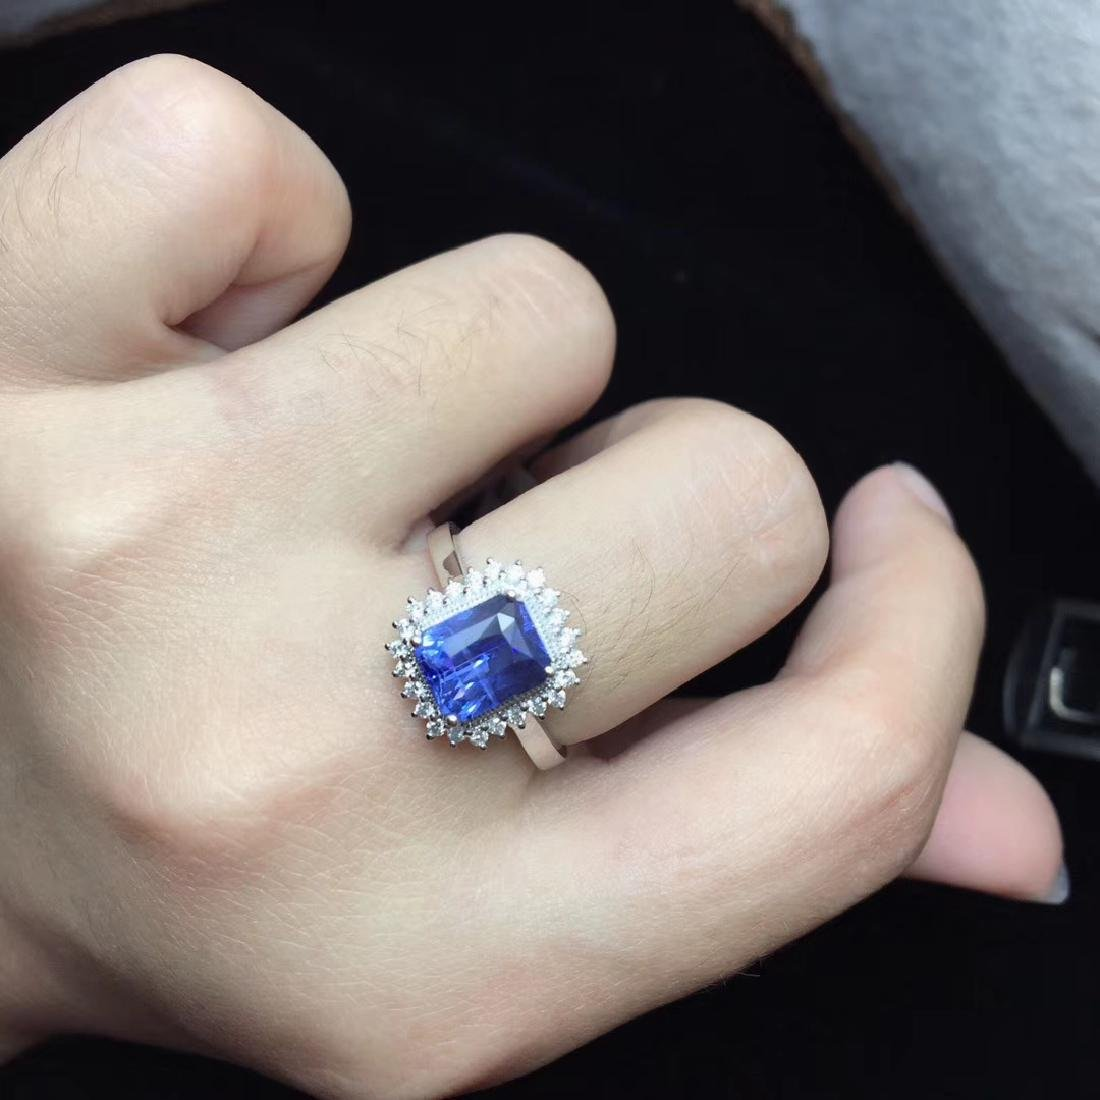 2.52ct Sapphire Ring in 18kt White Gold - 6